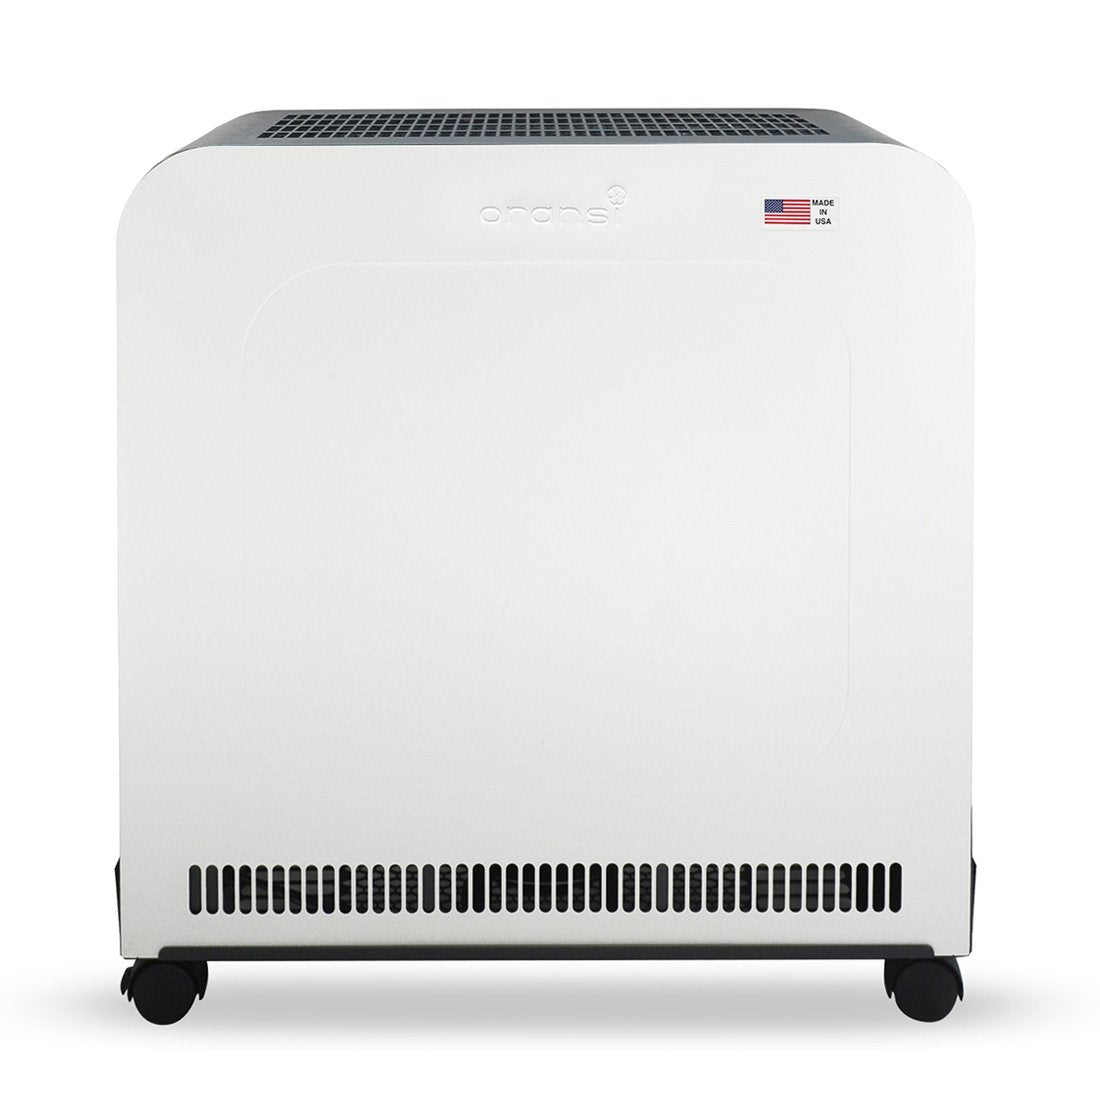 Erik 650A Air Purifier